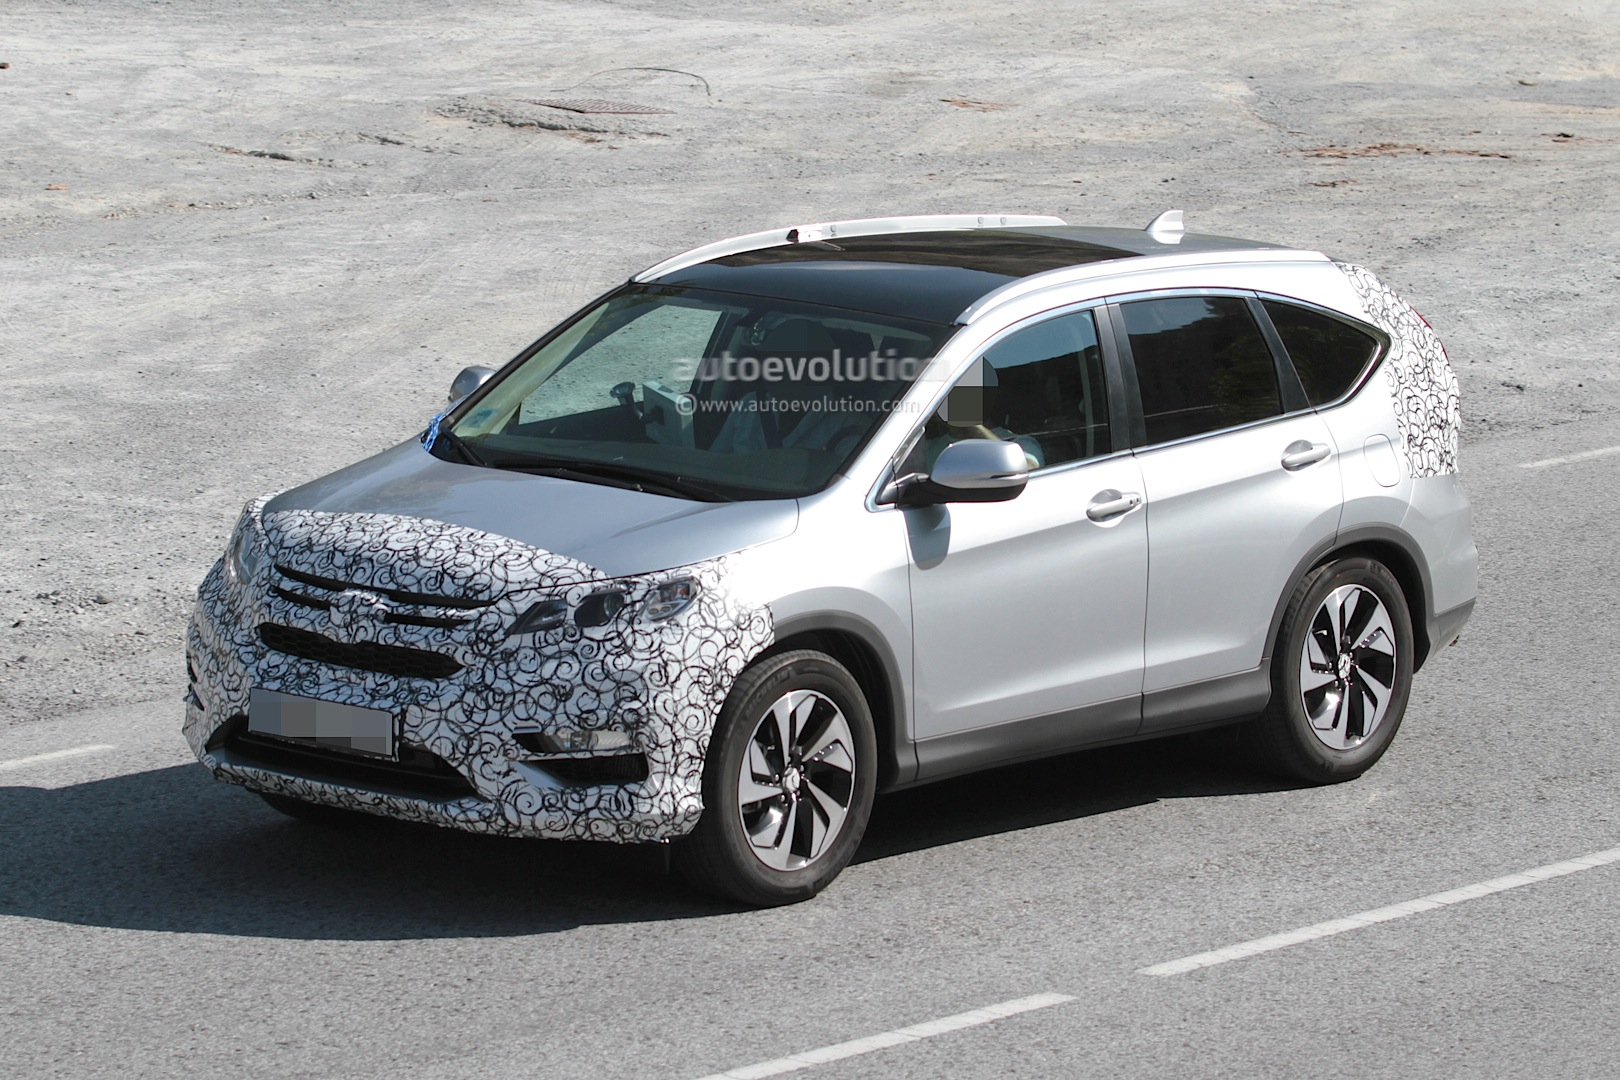 2016 Honda CR-V Facelift Spied While Testing - autoevolution